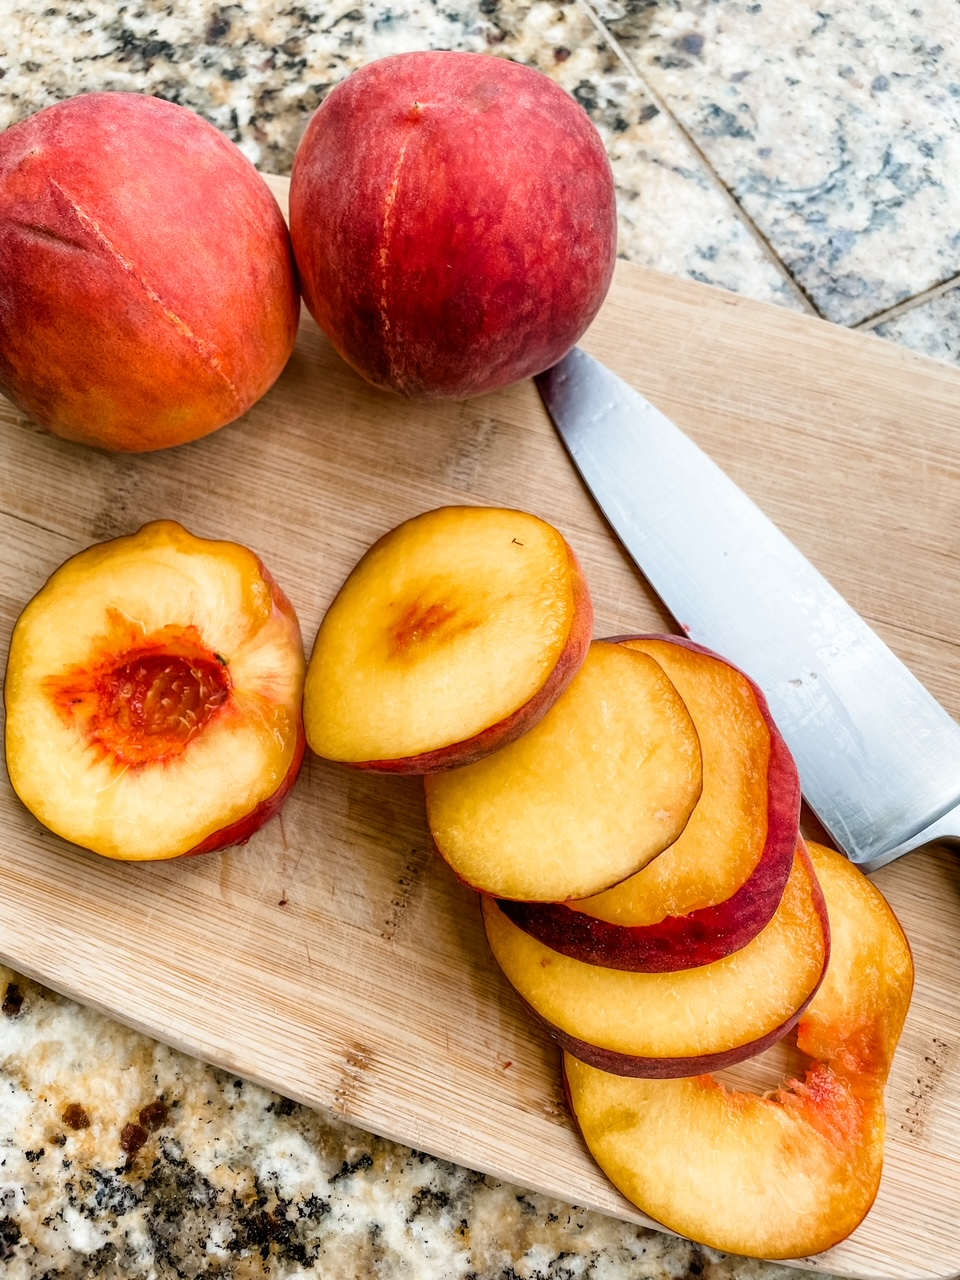 Two whole peaches and a sliced one on a cutting board